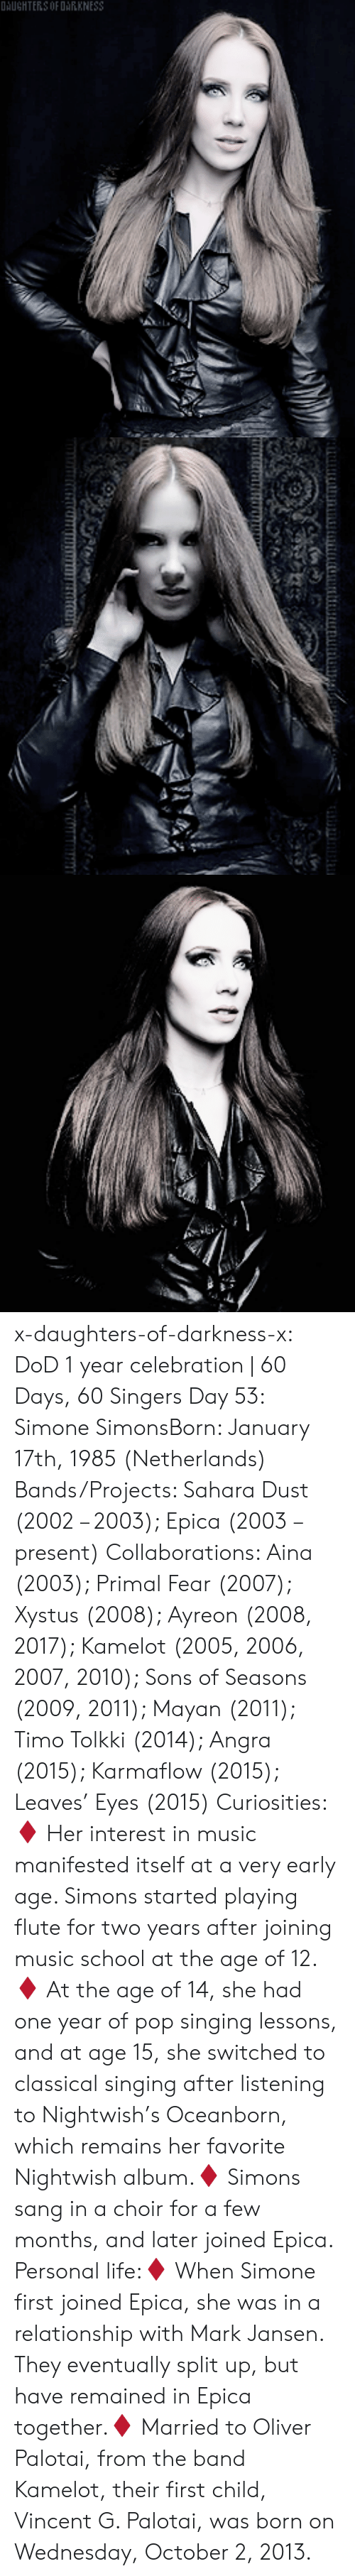 Life, Music, and Pop: OAUGHTERS OF DARKNESS x-daughters-of-darkness-x: DoD 1 year celebration | 60 Days, 60 Singers Day 53: Simone SimonsBorn: January 17th, 1985 (Netherlands) Bands/Projects: Sahara Dust (2002 – 2003); Epica (2003 – present) Collaborations: Aina (2003); Primal Fear (2007); Xystus (2008); Ayreon (2008, 2017); Kamelot (2005, 2006, 2007, 2010); Sons of Seasons (2009, 2011); Mayan (2011); Timo Tolkki (2014); Angra (2015); Karmaflow (2015); Leaves' Eyes (2015) Curiosities:♦ Her interest in music manifested itself at a very early age. Simons started playing flute for two years after joining music school at the age of 12.♦ At the age of 14, she had one year of pop singing lessons, and at age 15, she switched to classical singing after listening to Nightwish's Oceanborn, which remains her favorite Nightwish album.♦ Simons sang in a choir for a few months, and later joined Epica. Personal life:♦ When Simone first joined Epica, she was in a relationship with Mark Jansen. They eventually split up, but have remained in Epica together.♦ Married to Oliver Palotai, from the band Kamelot, their first child, Vincent G. Palotai, was born on Wednesday, October 2, 2013.